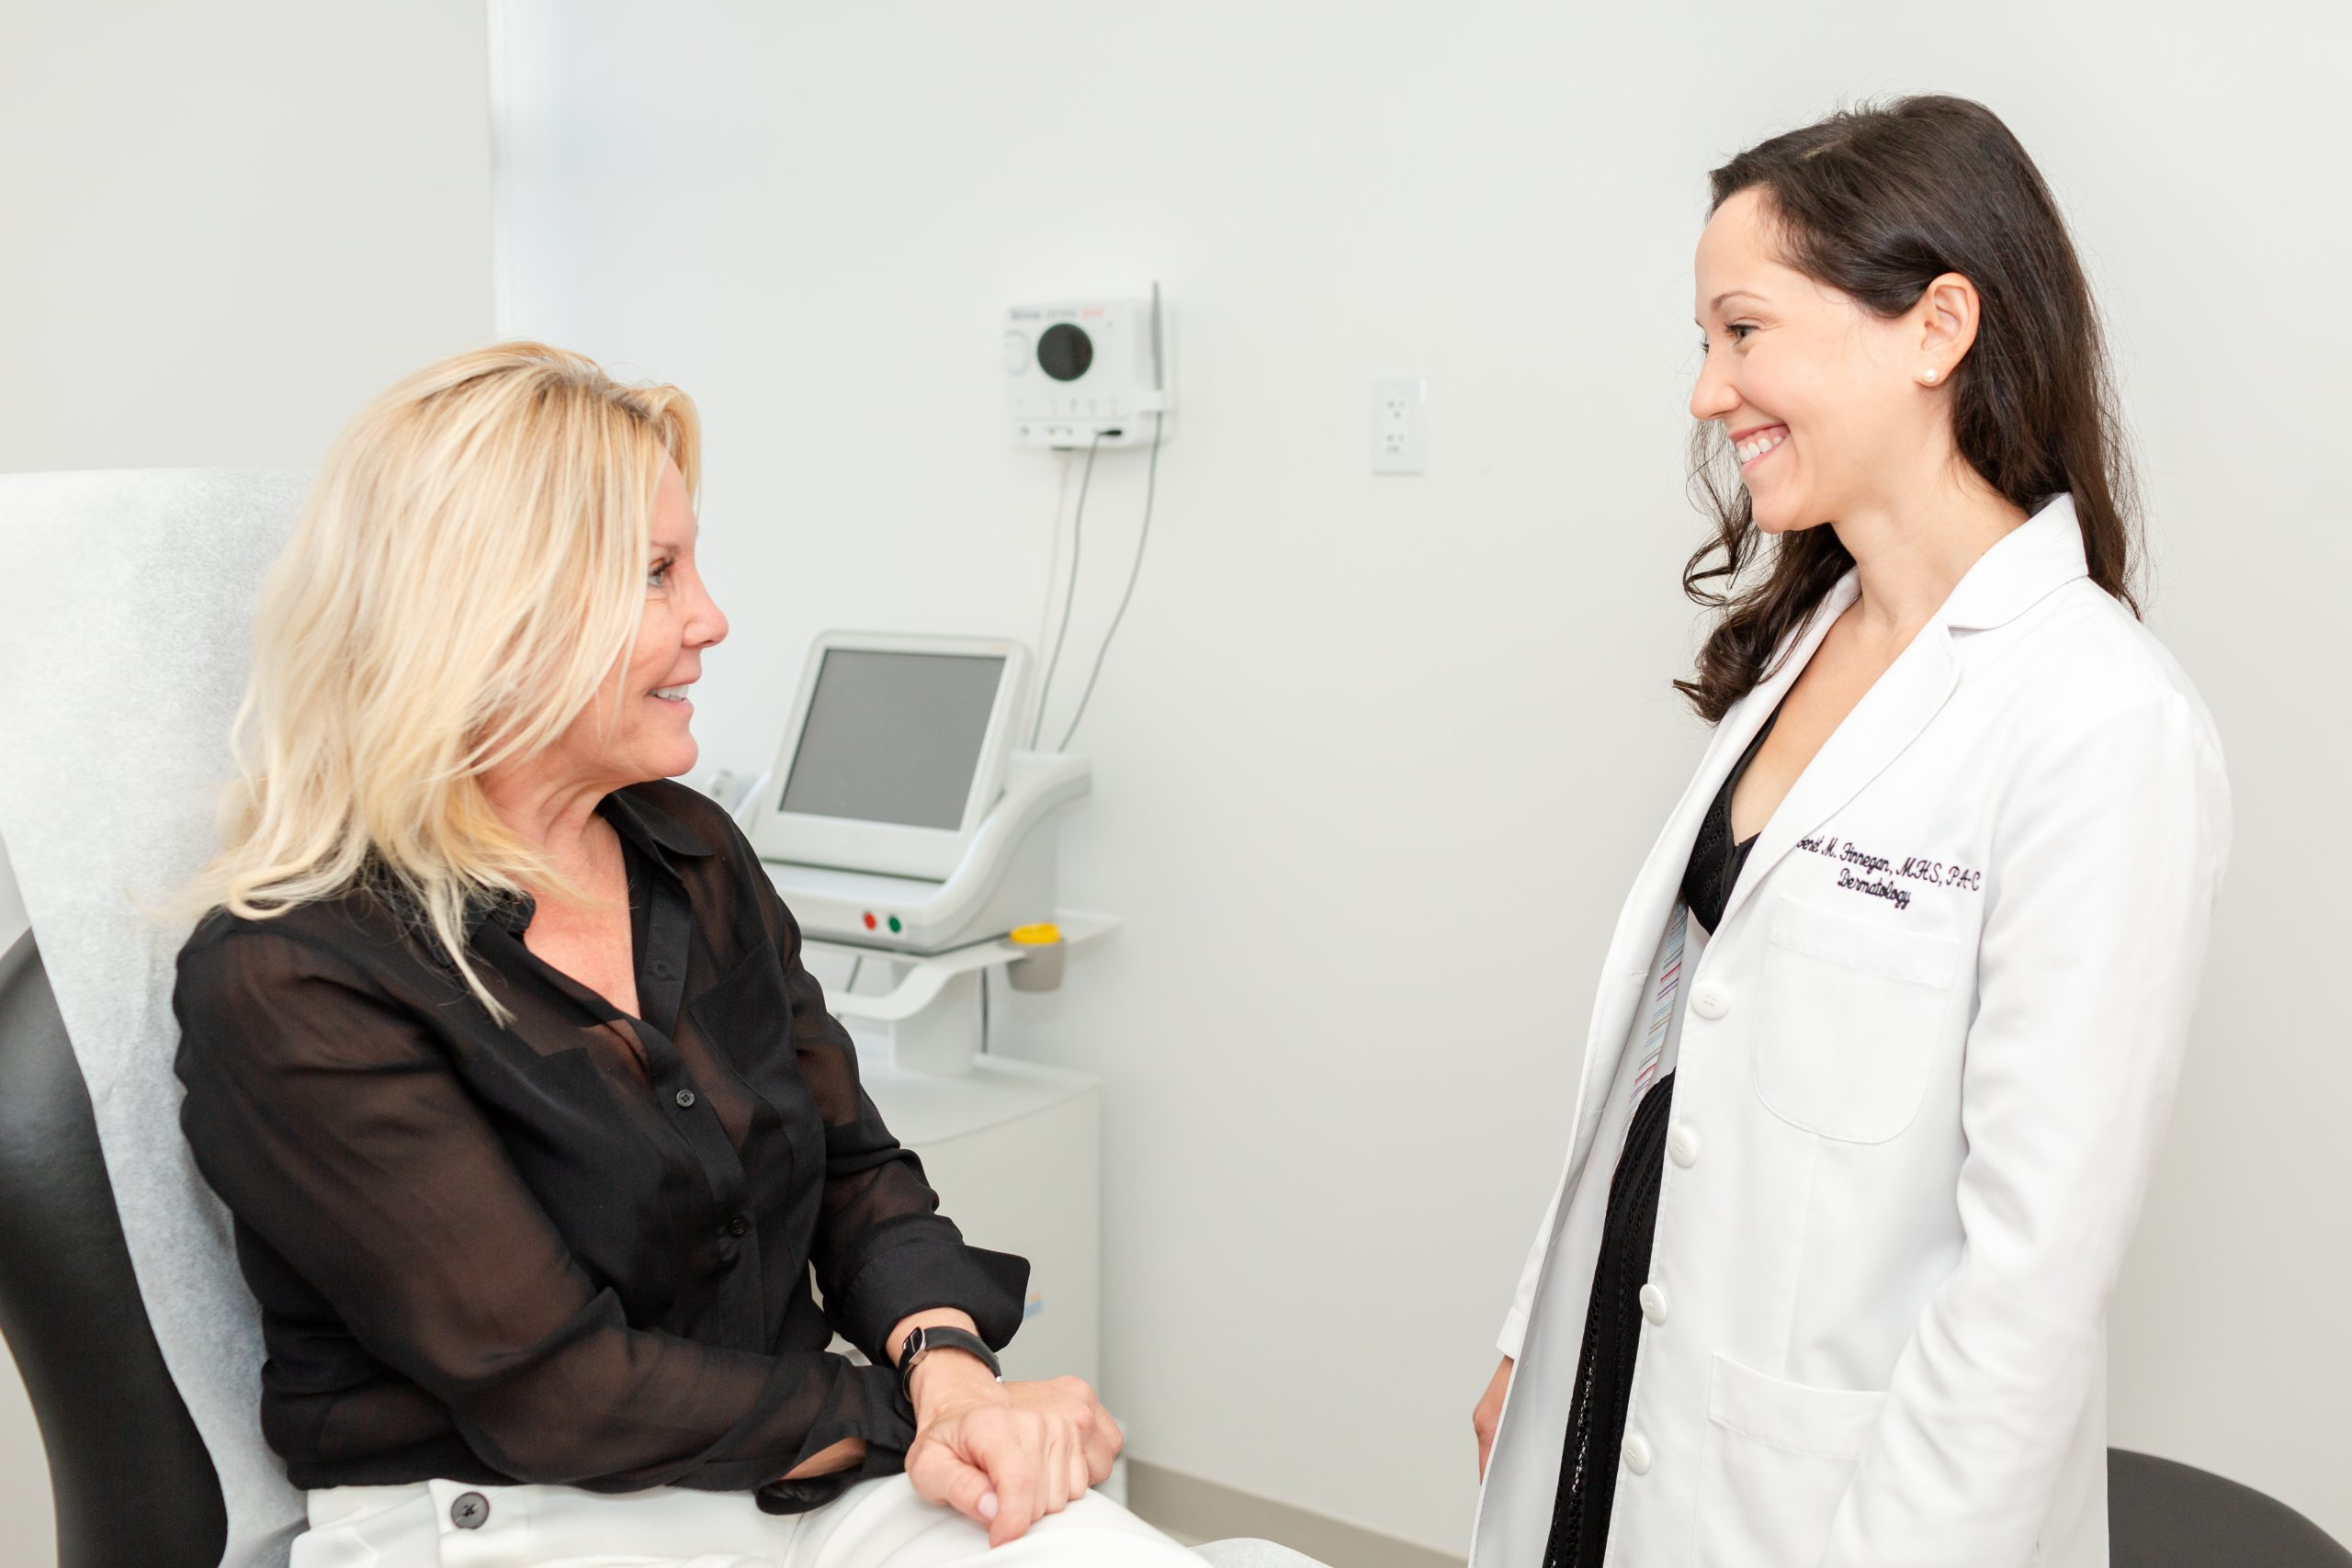 Dr. Genét Finnegan is consulting a female patient, Spring Street Dermatology, New York City, NY.